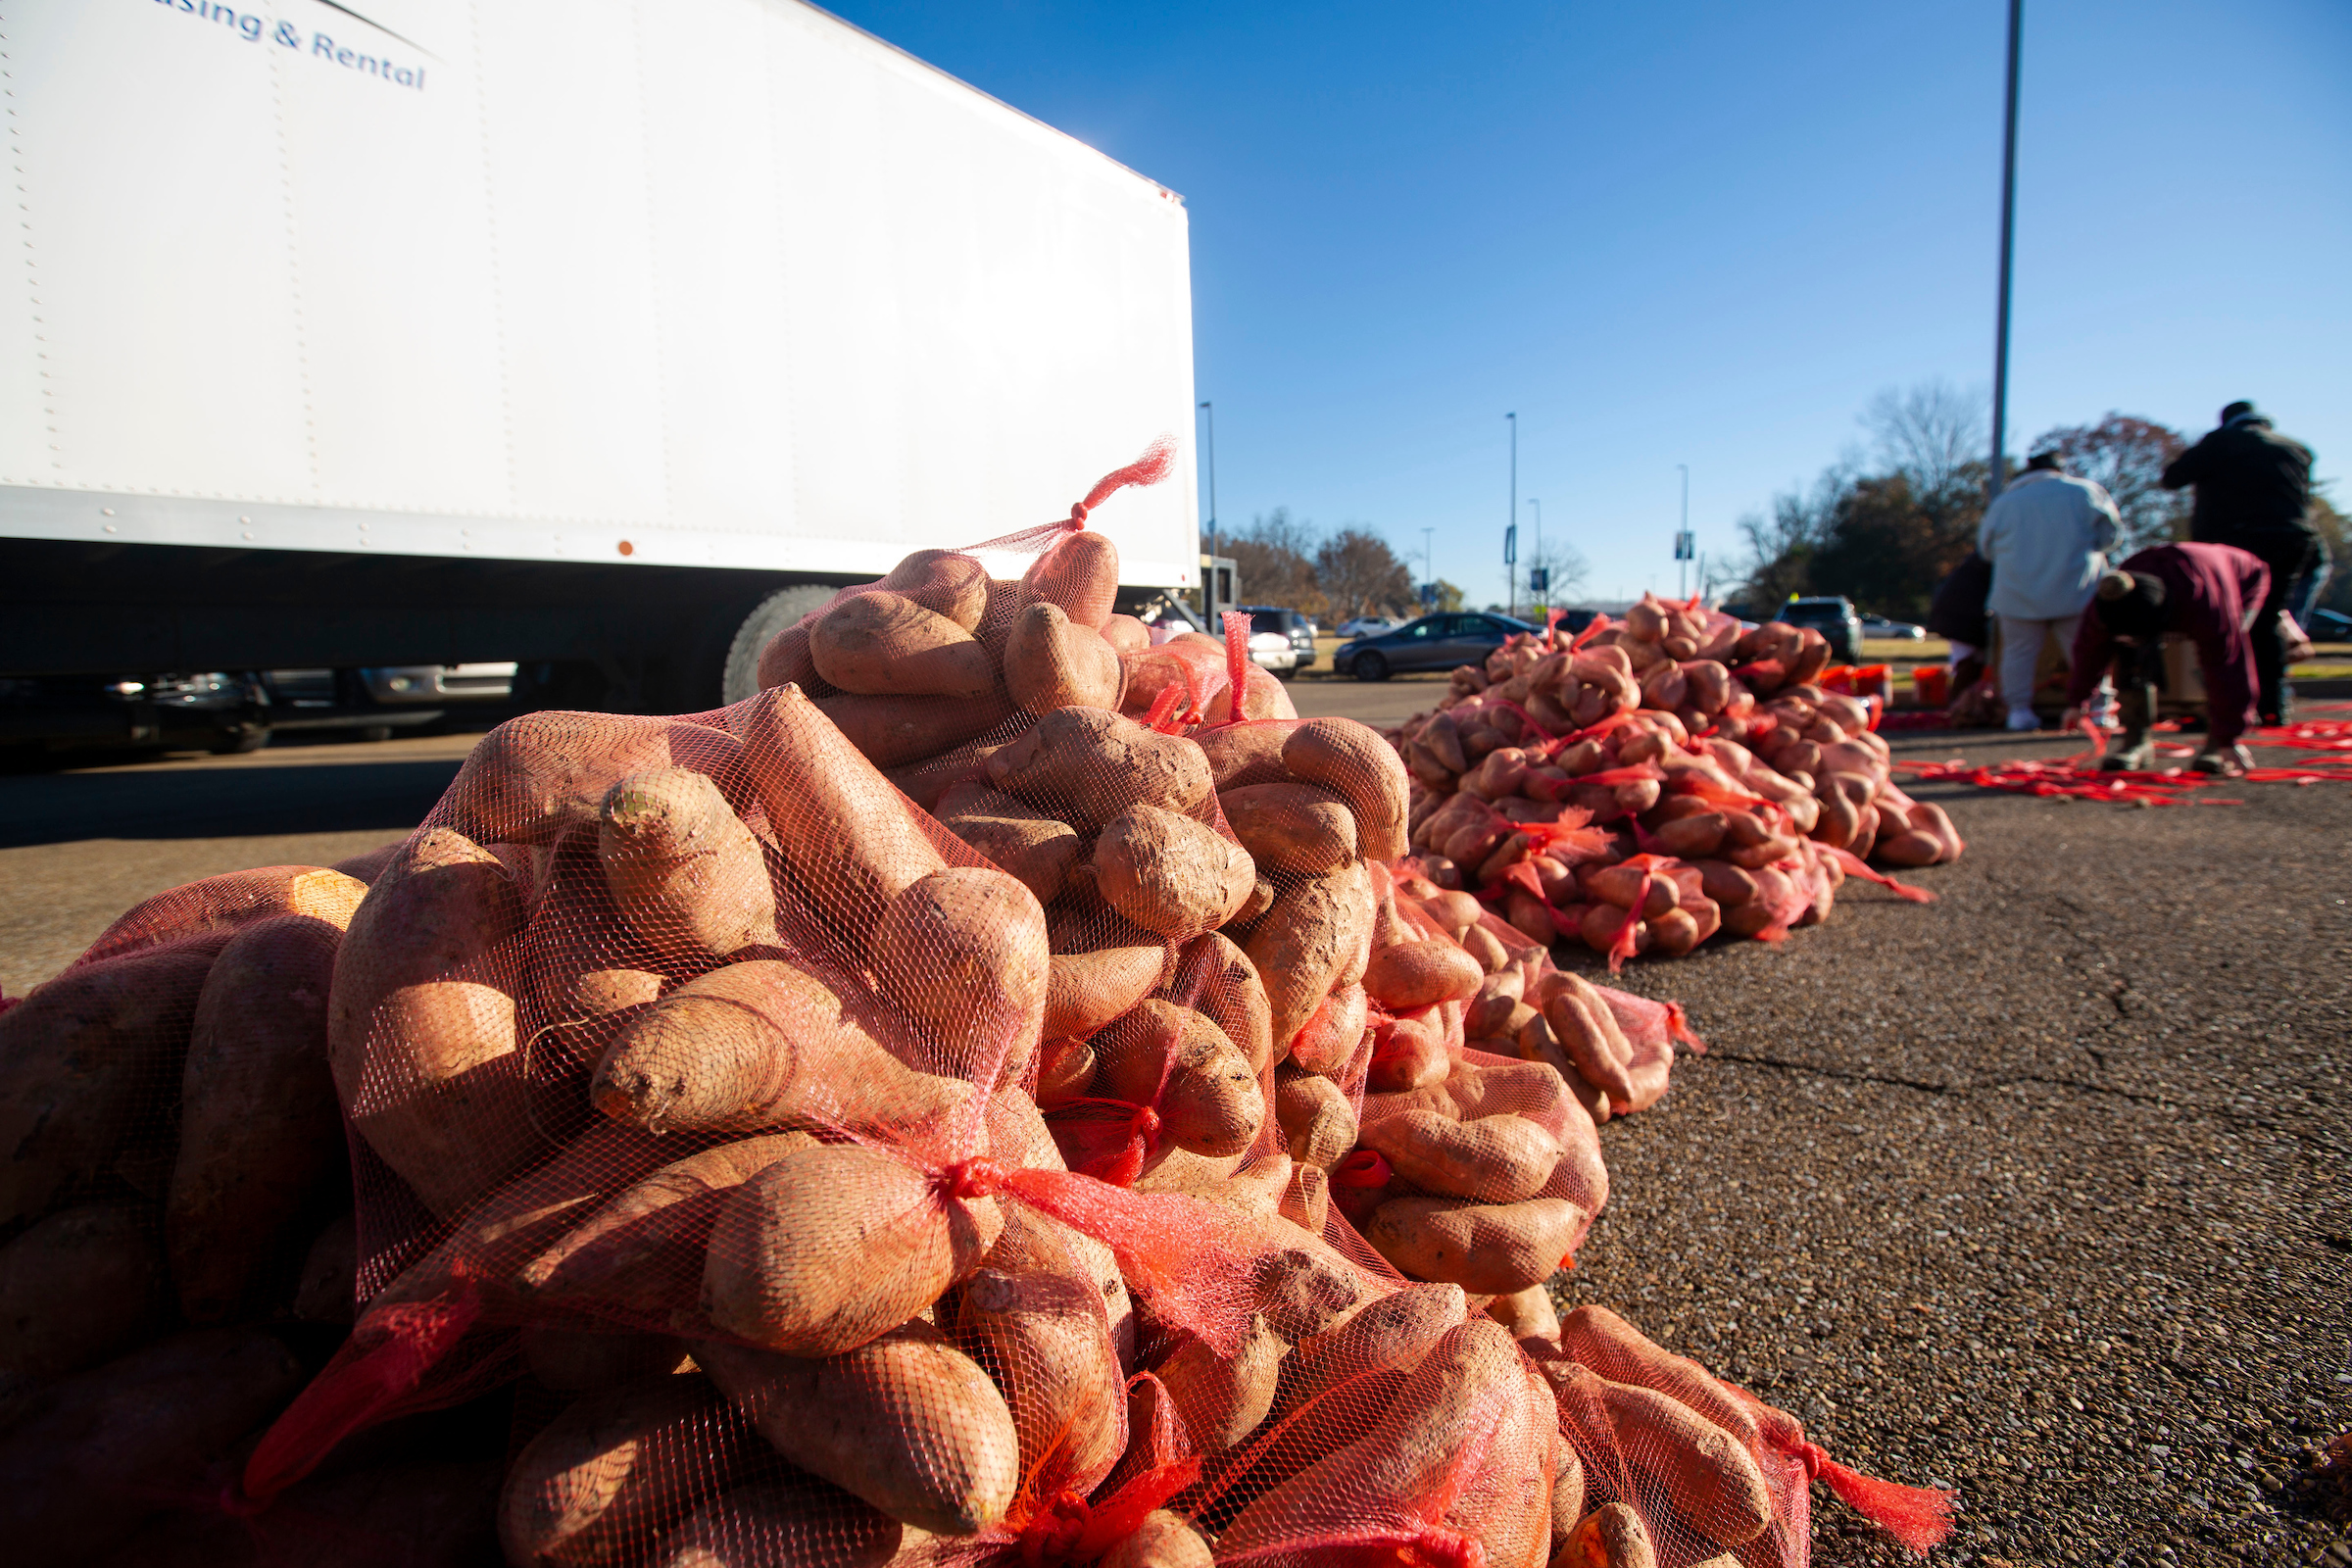 On Dec. 18, residents of West Jackson were treated to 15,000 sweet potatoes and fresh greens during the popular Crop Drop event hosted by JSU's Center for University-Based Development and the Society of St. Andrew. (Photo by William Kelly/JSU)